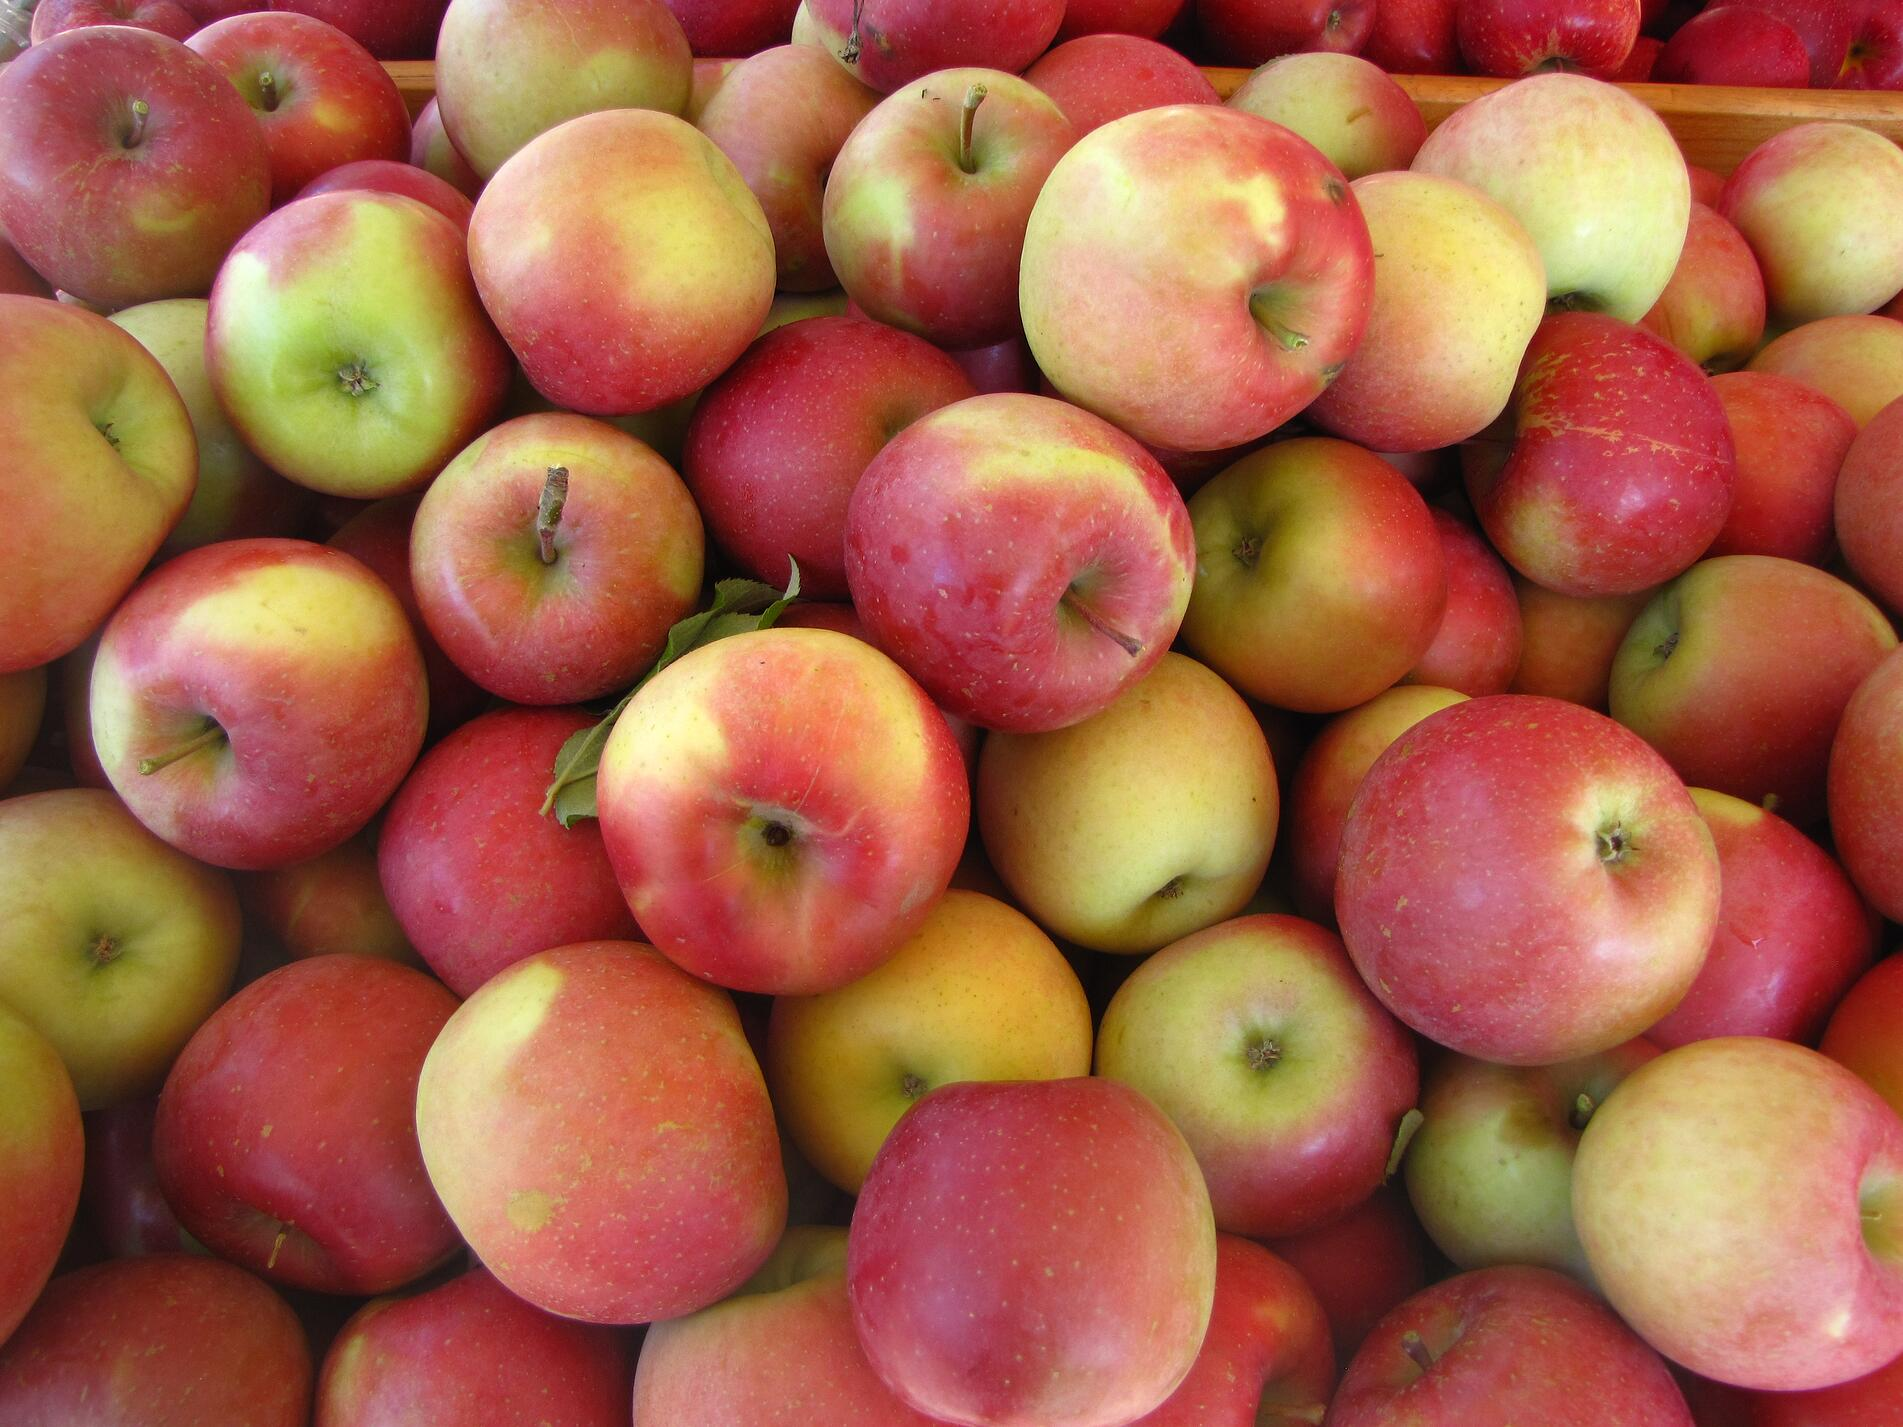 mcintosh apples.jpg